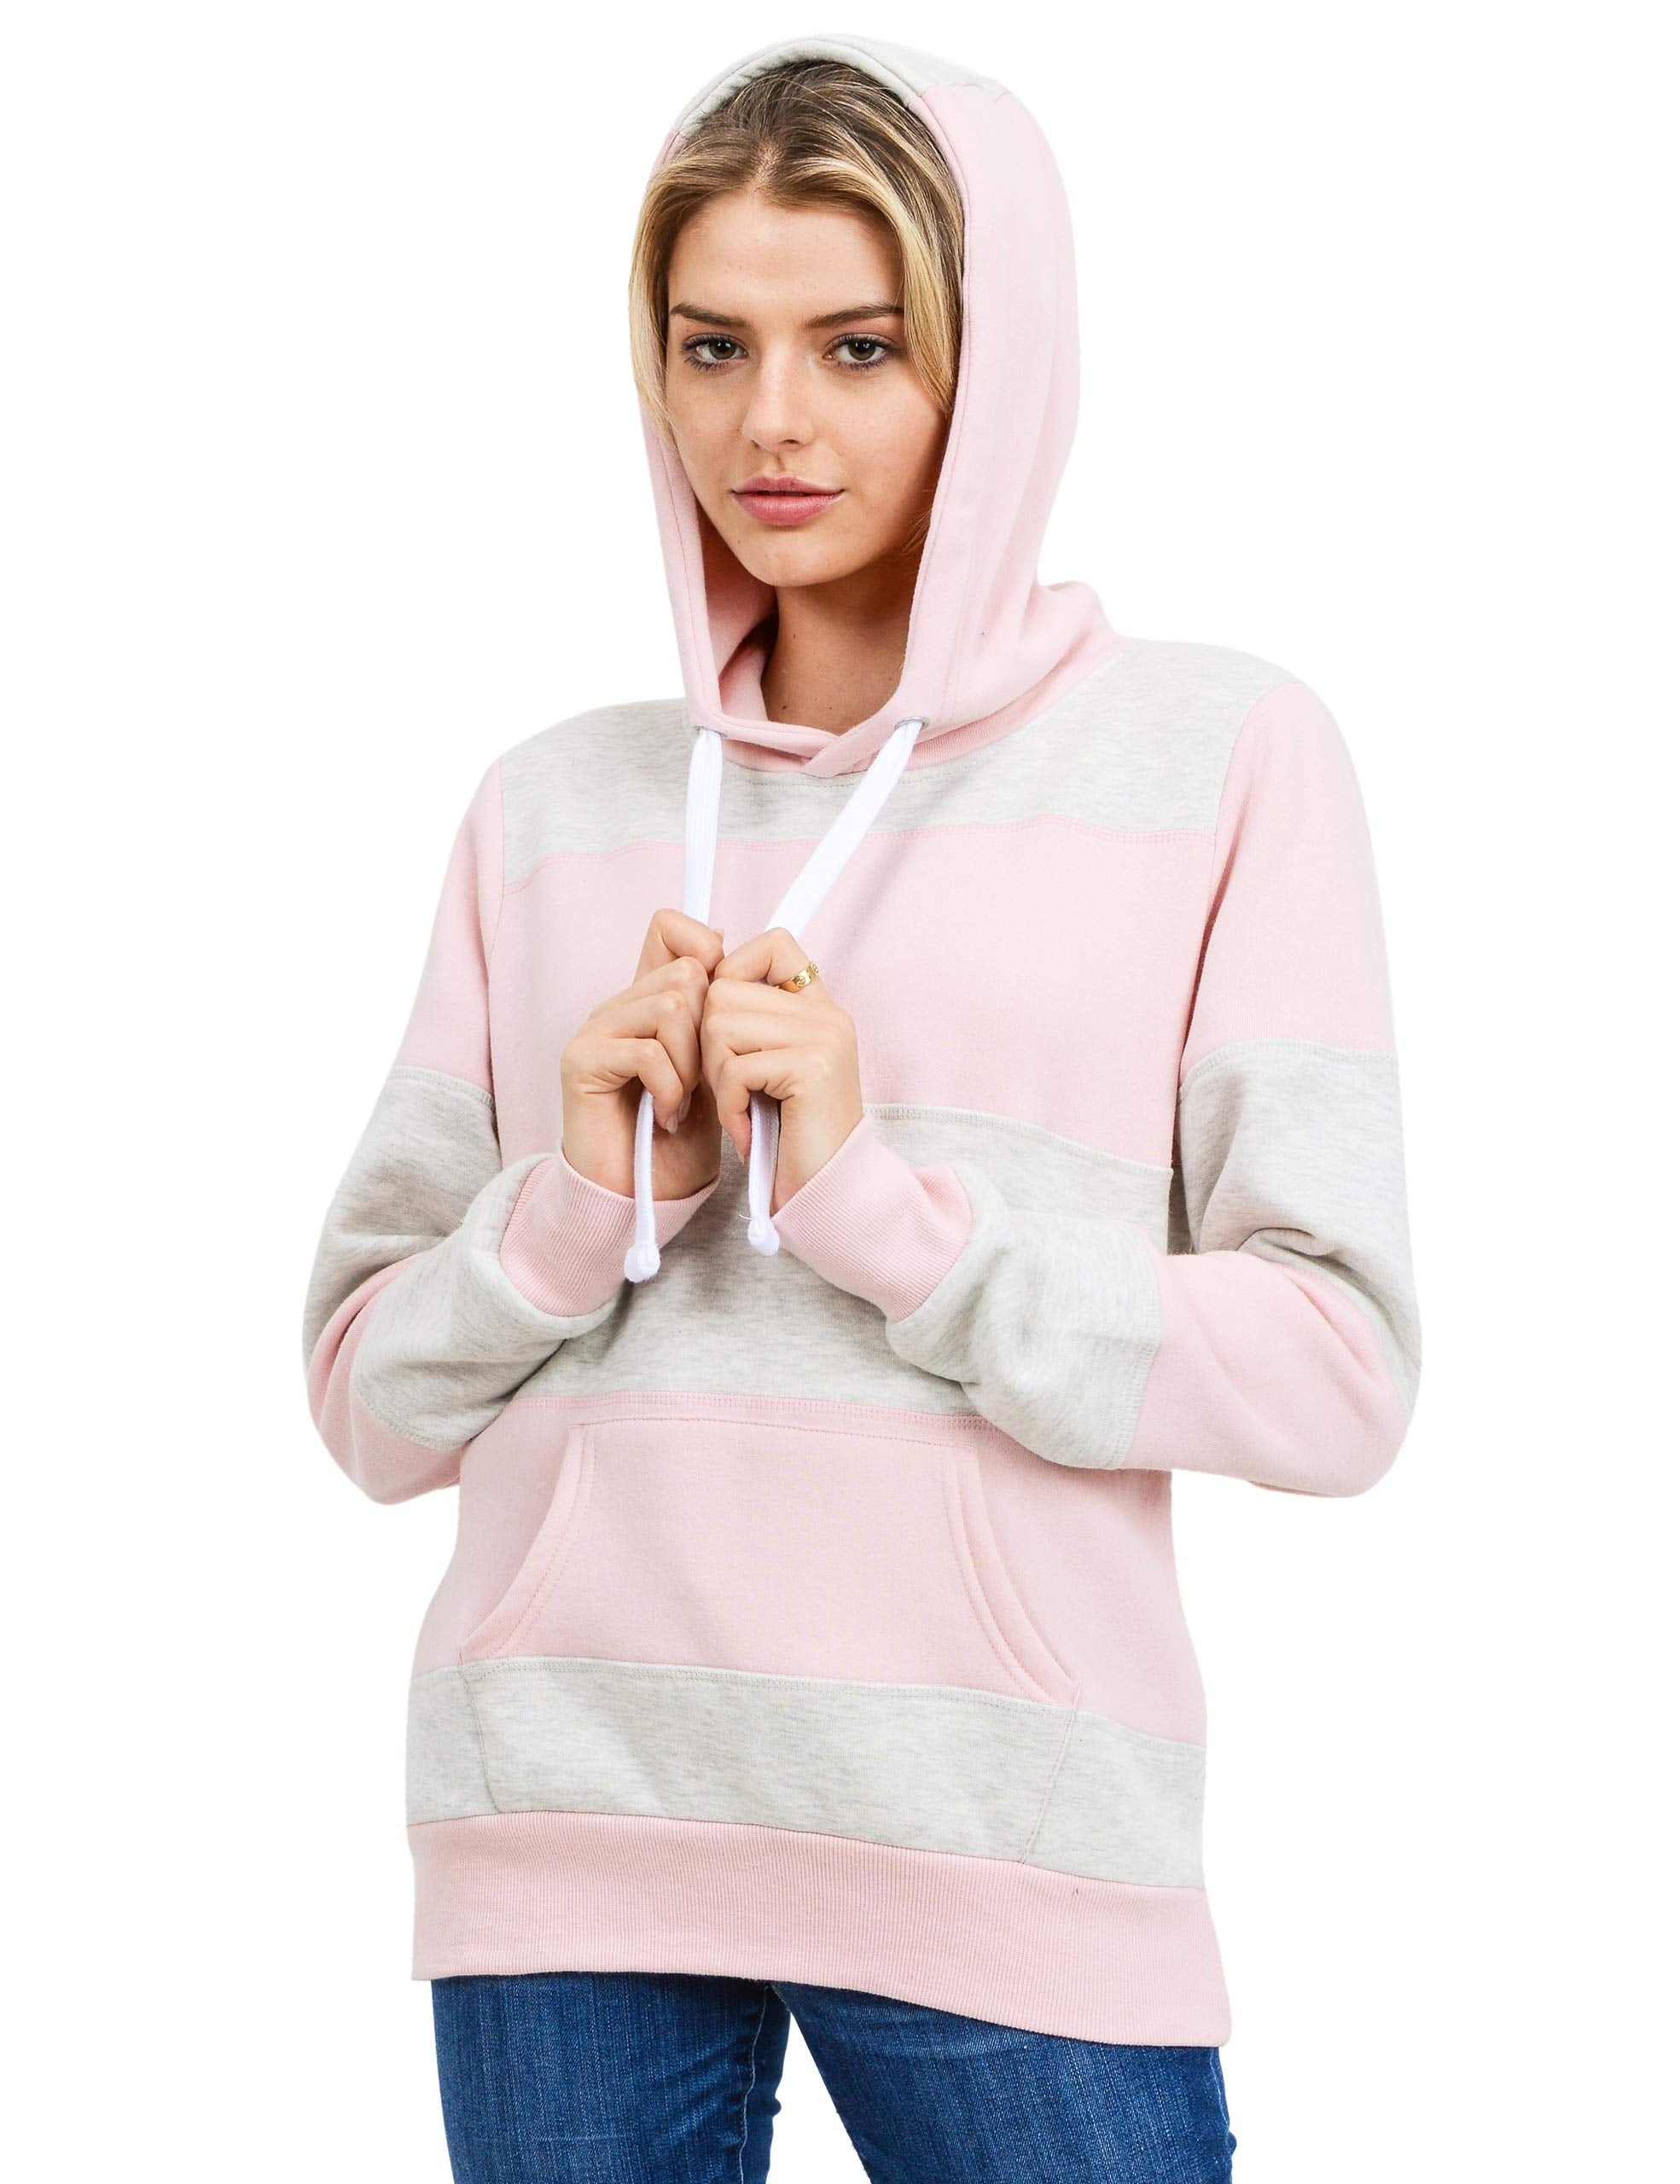 Women's Ultra Soft Fleece Color Block Pullover Hoodie Sweatshirt, Blush/Oatmeal, X-Small - wiihuu